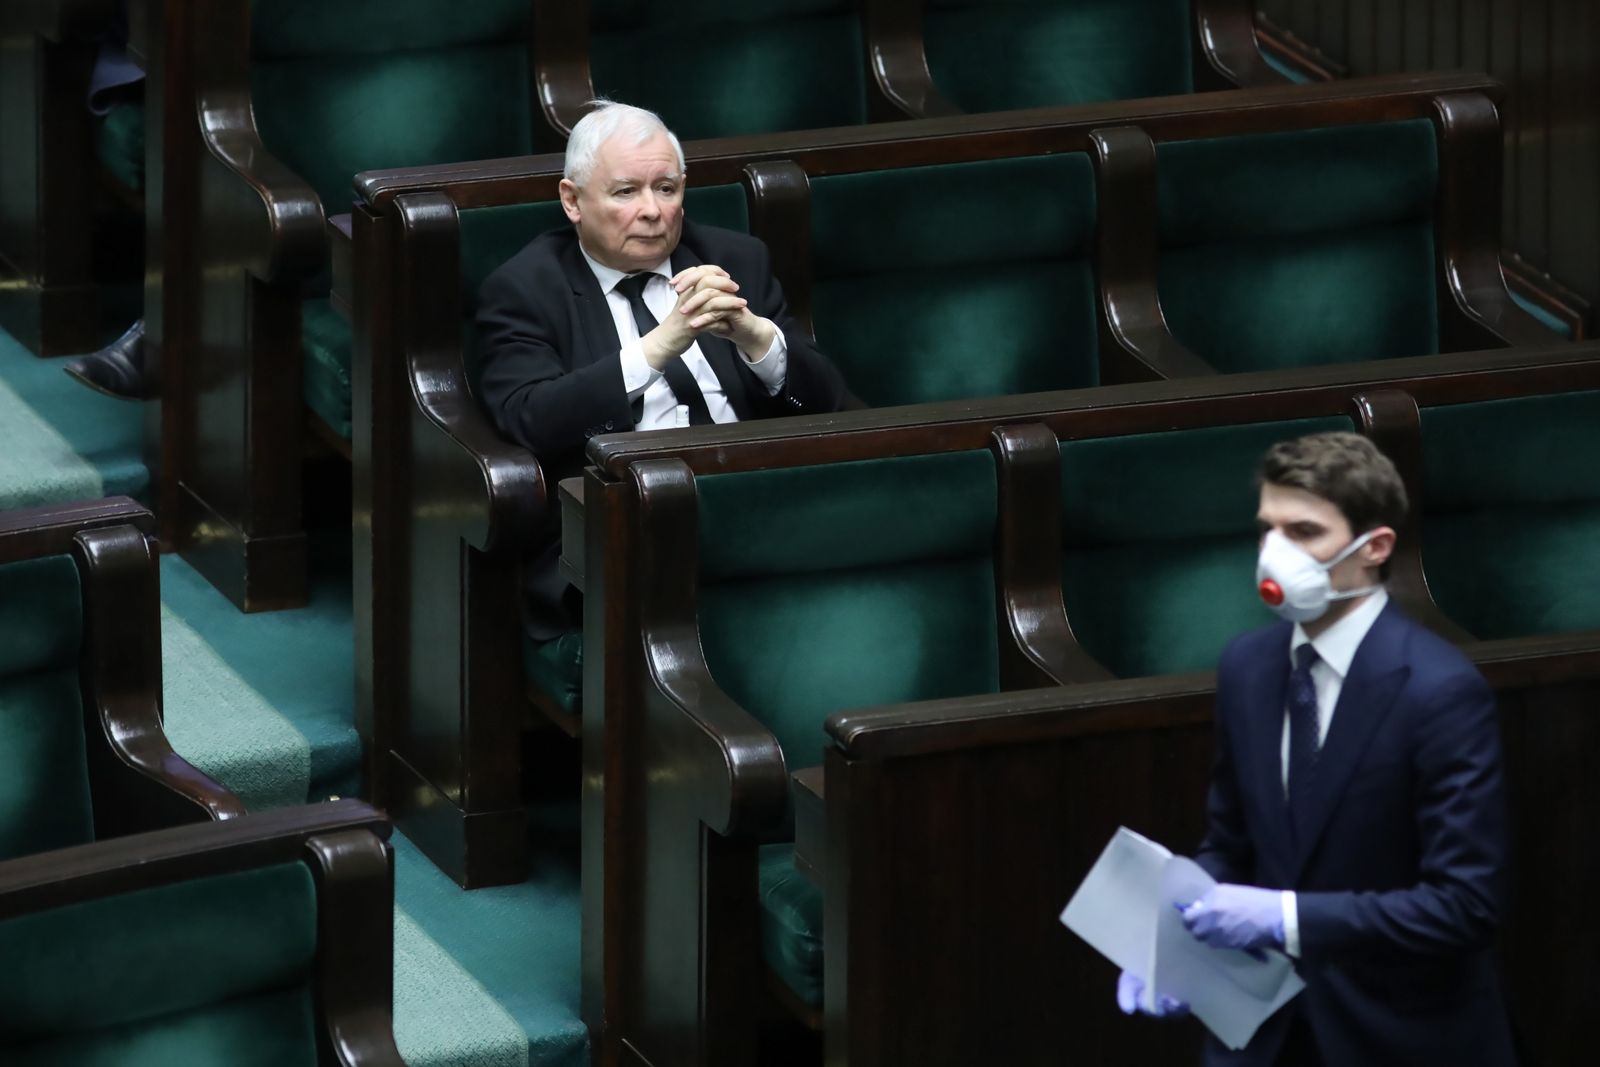 Parliamentary debate on the on changes to the statutes regarding the organisation in Sejm, Warsaw, Poland - 26 Mar 2020